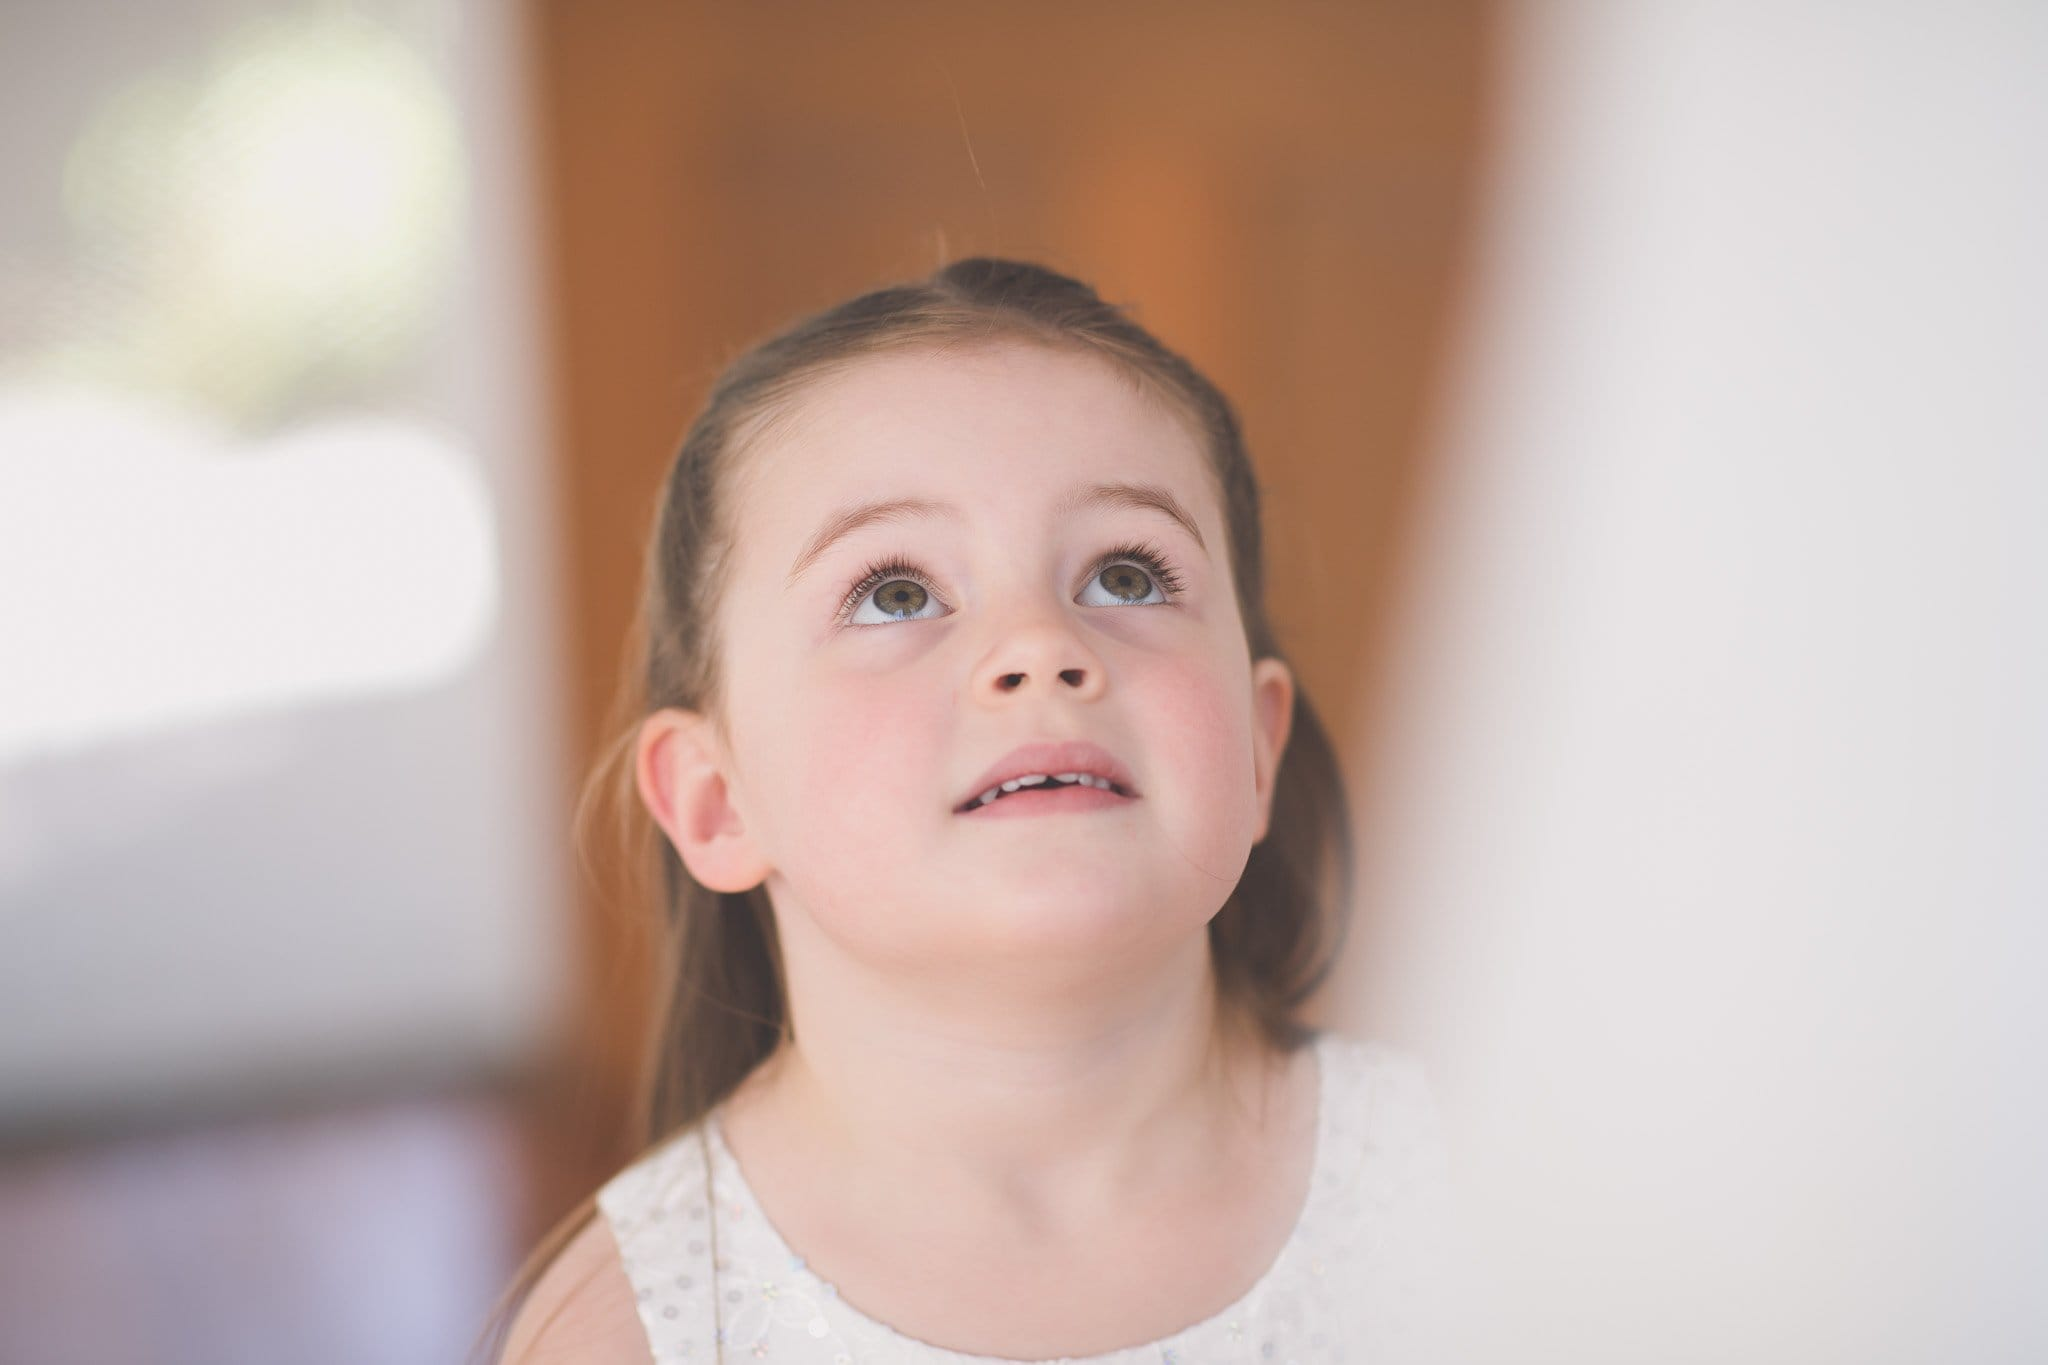 Melbourne wedding photography of a flower girl's face looking up at a wedding dress